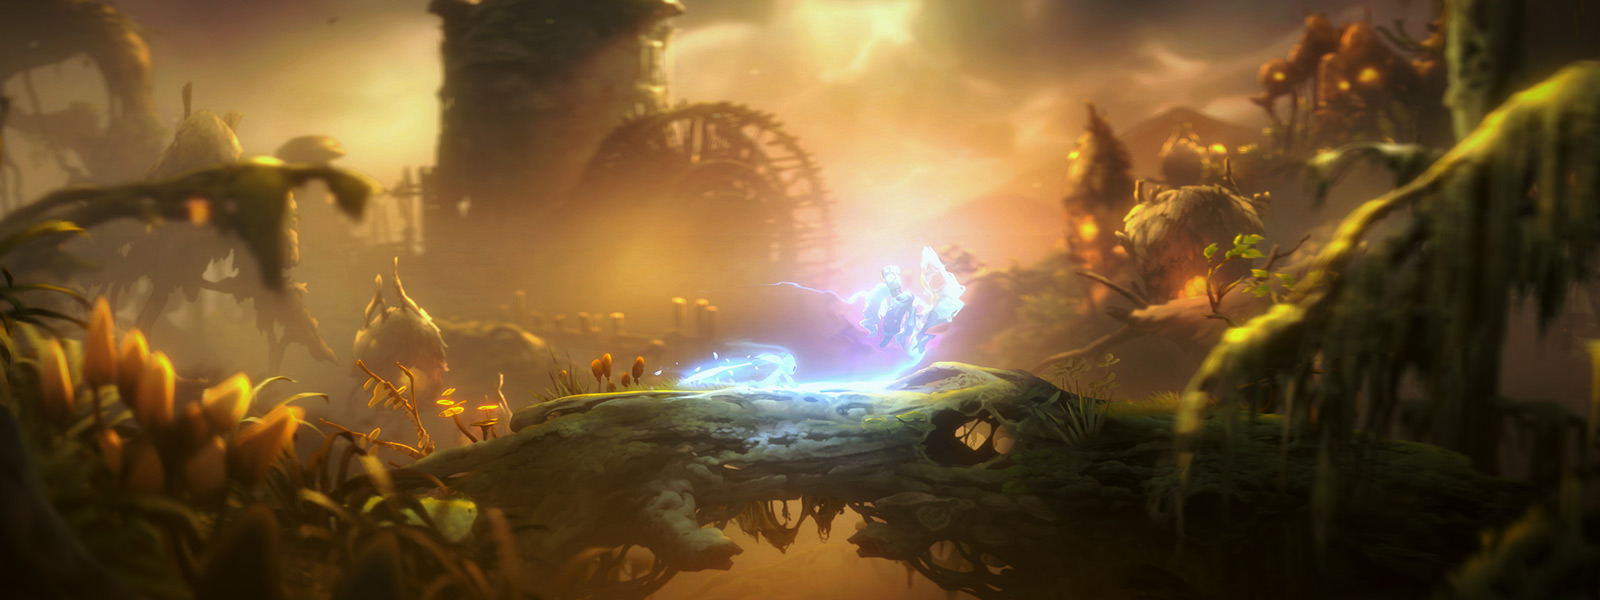 Ori and the Will of the Wisps のスクリーンショット